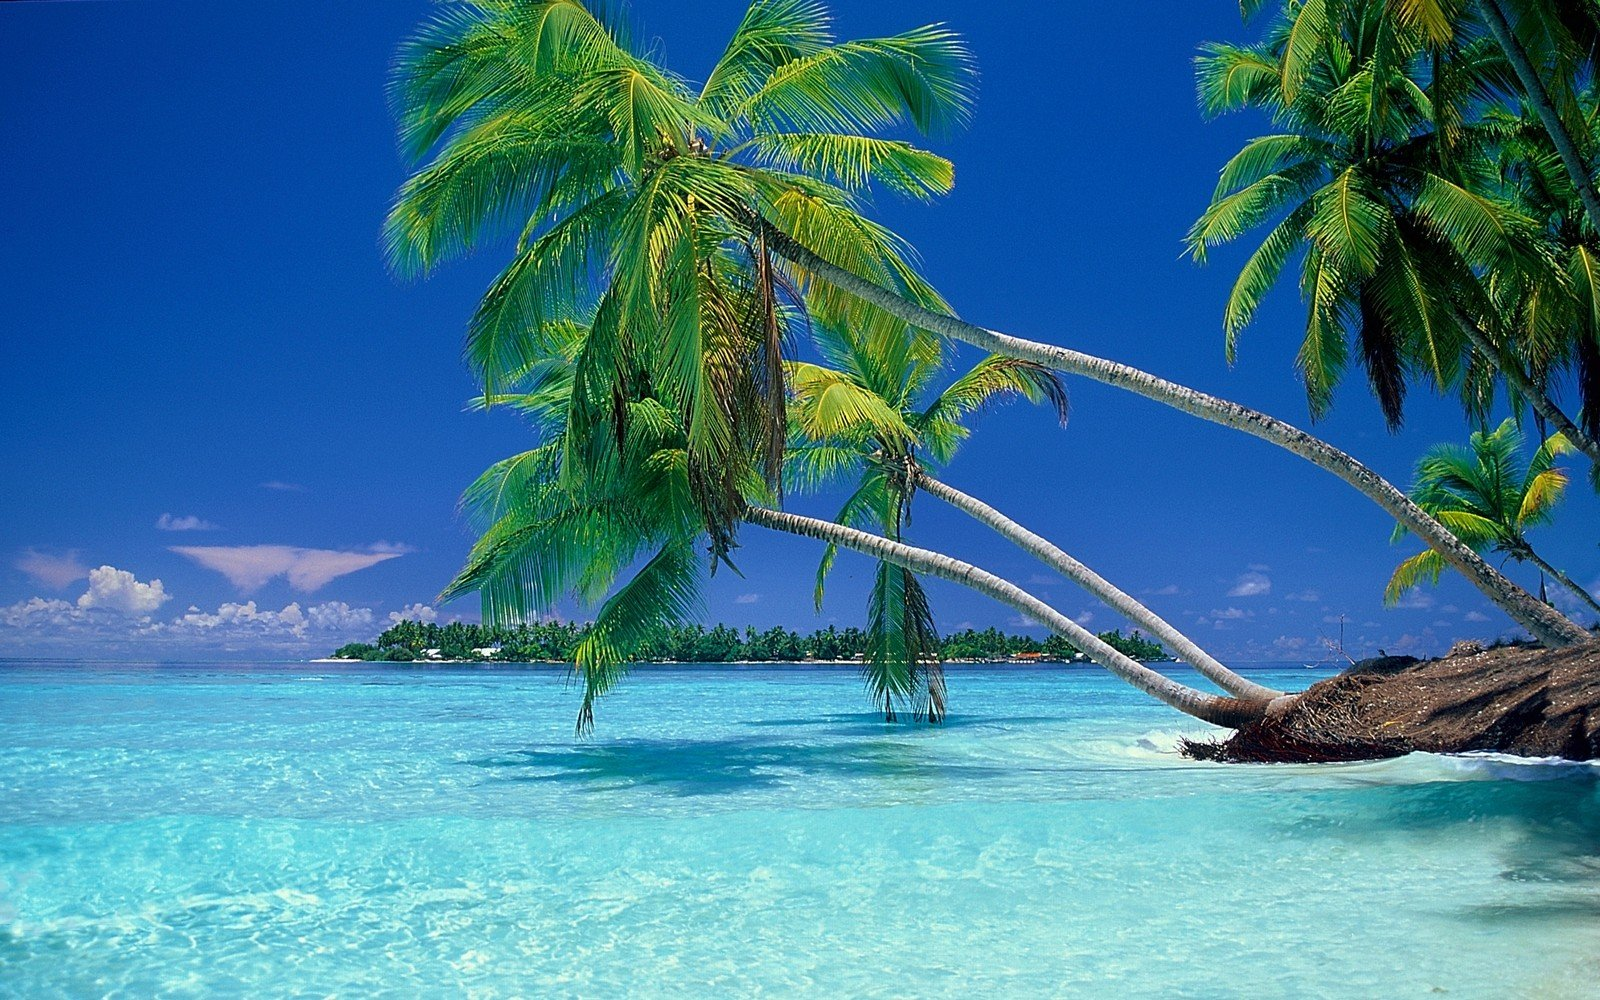 Tropical Beach Screensavers And Wallpaper: Wallpaper Landscapes Beach Tropical HD